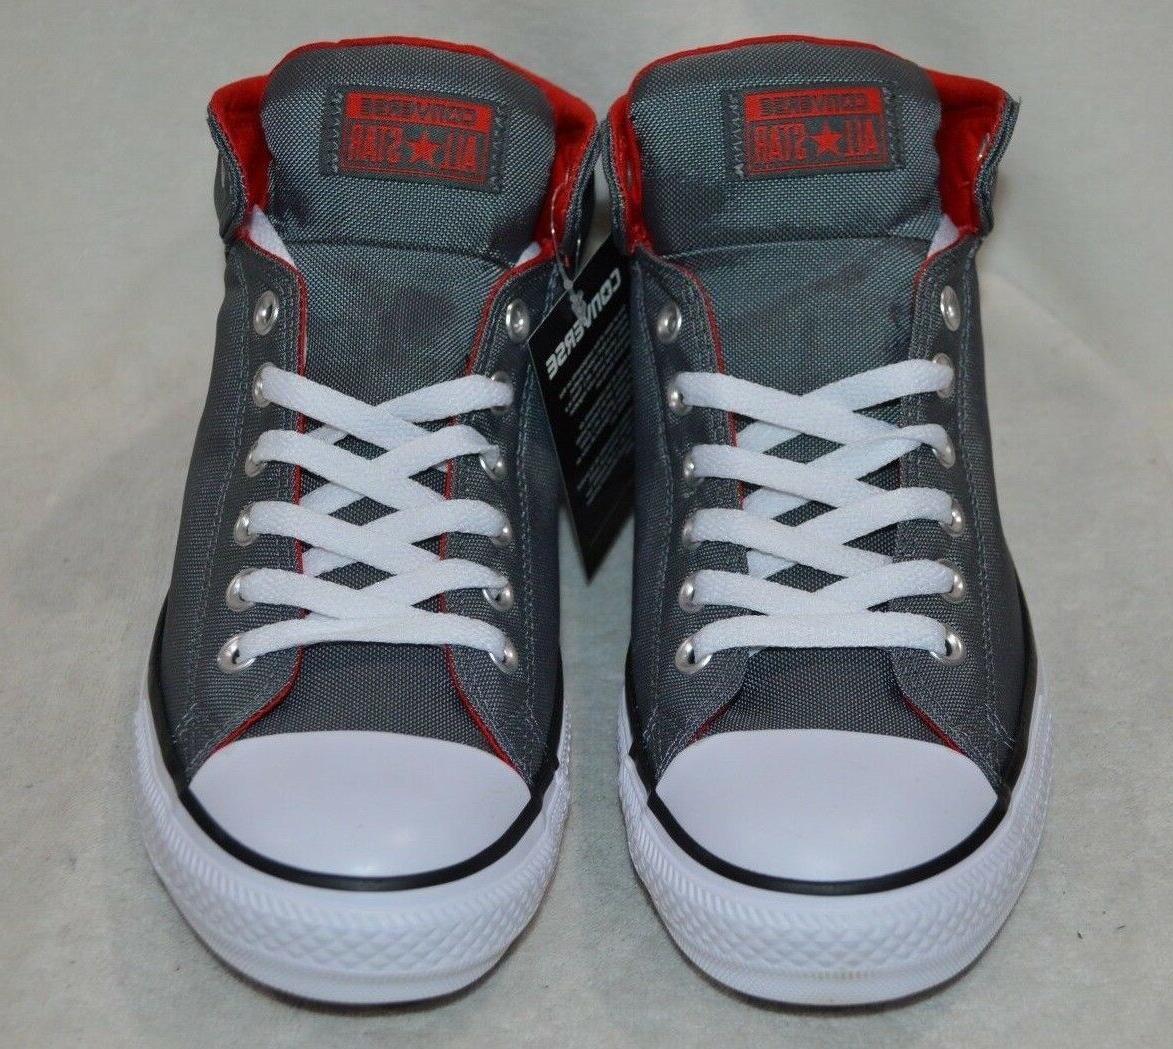 Converse CT AS High - Sizes 9/12